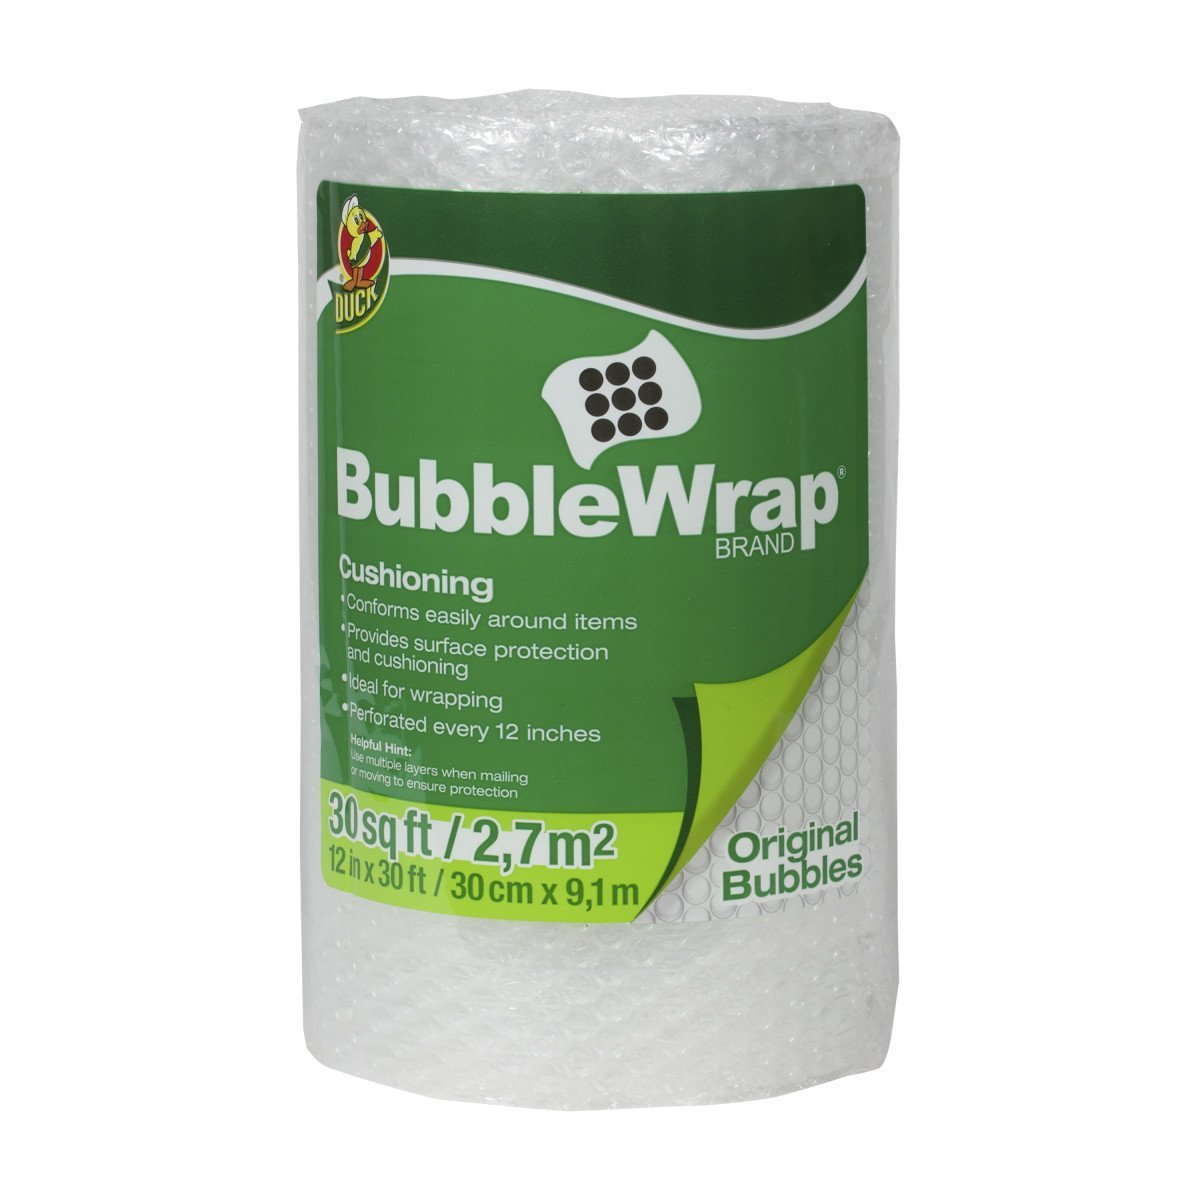 Brand Bubble Wrap Original Cushioning, 12 in. x 30 ft., Single Roll (393251), Original Bubble Wrap with 3/16-inch height bubble, provides more cushioning and.., By Duck